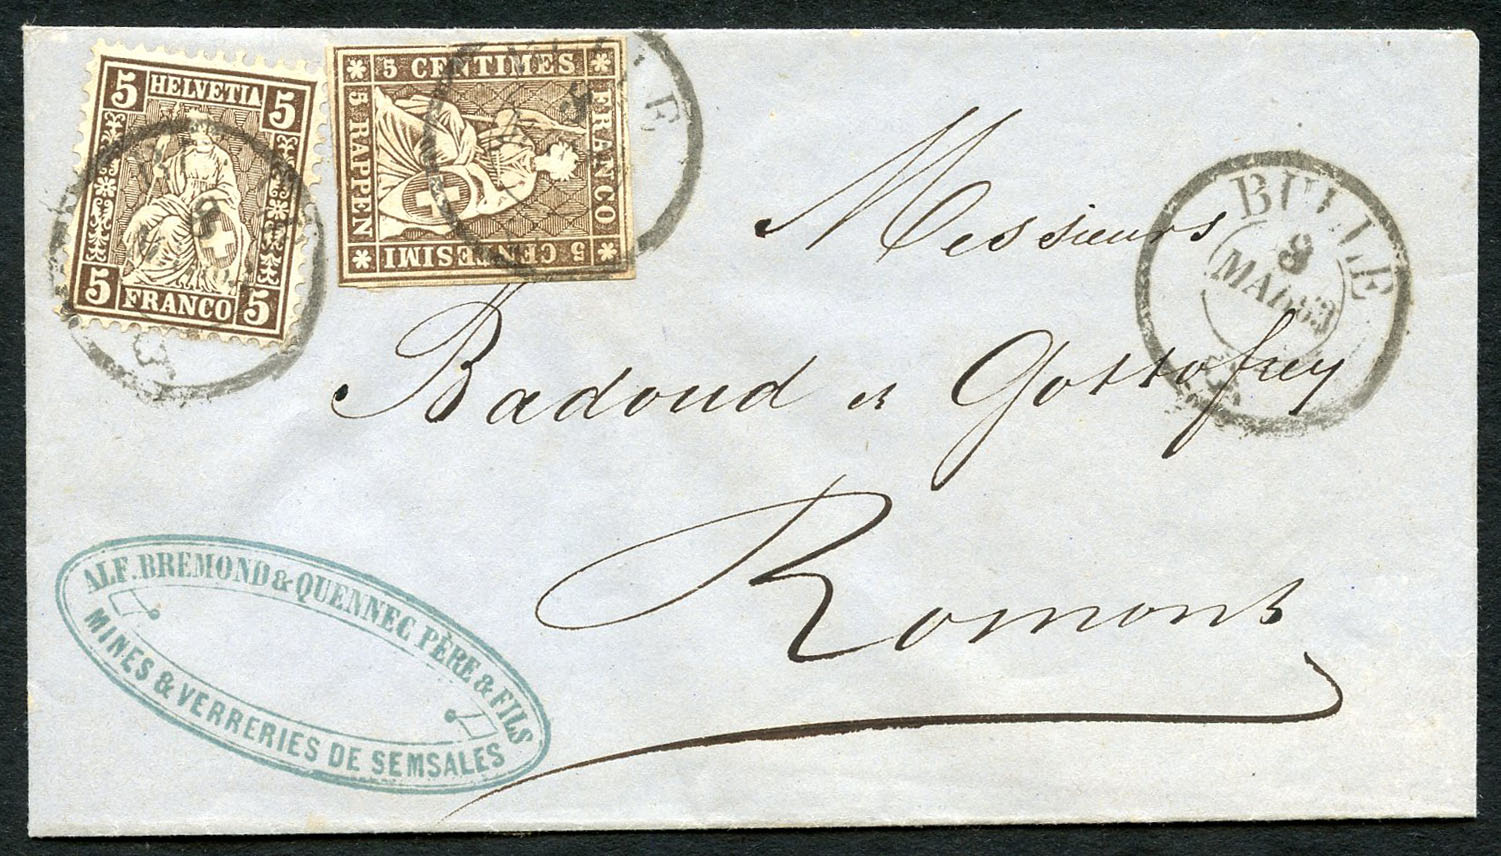 Rare mixed franking same denominations 5 Centimes Strubel and 5 Centimes sitting Helvetia, lot number 394